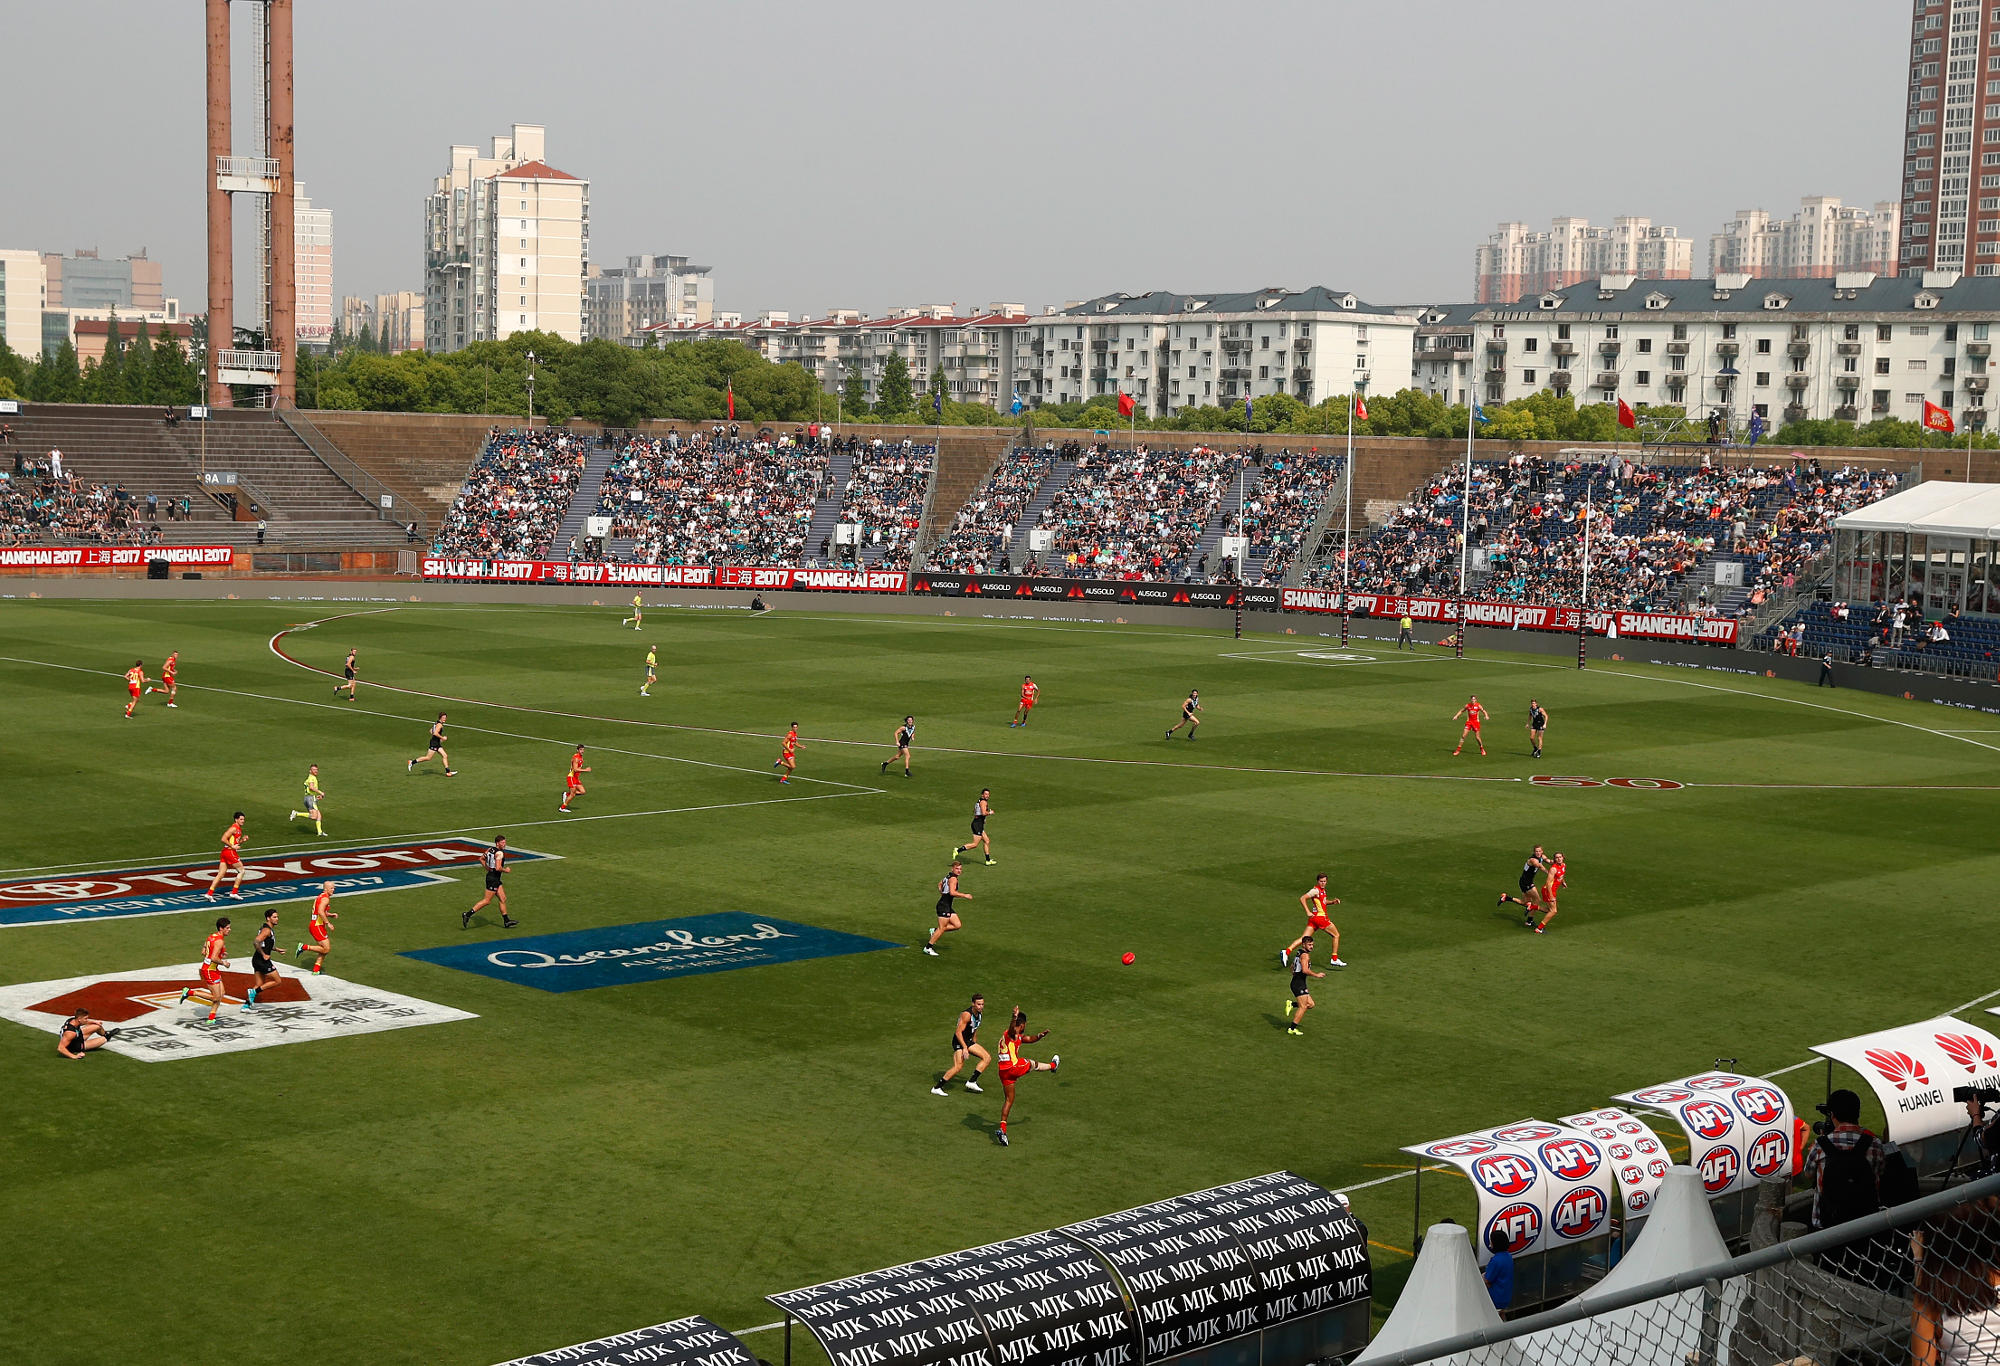 AFL Power vs Suns in Shanghai